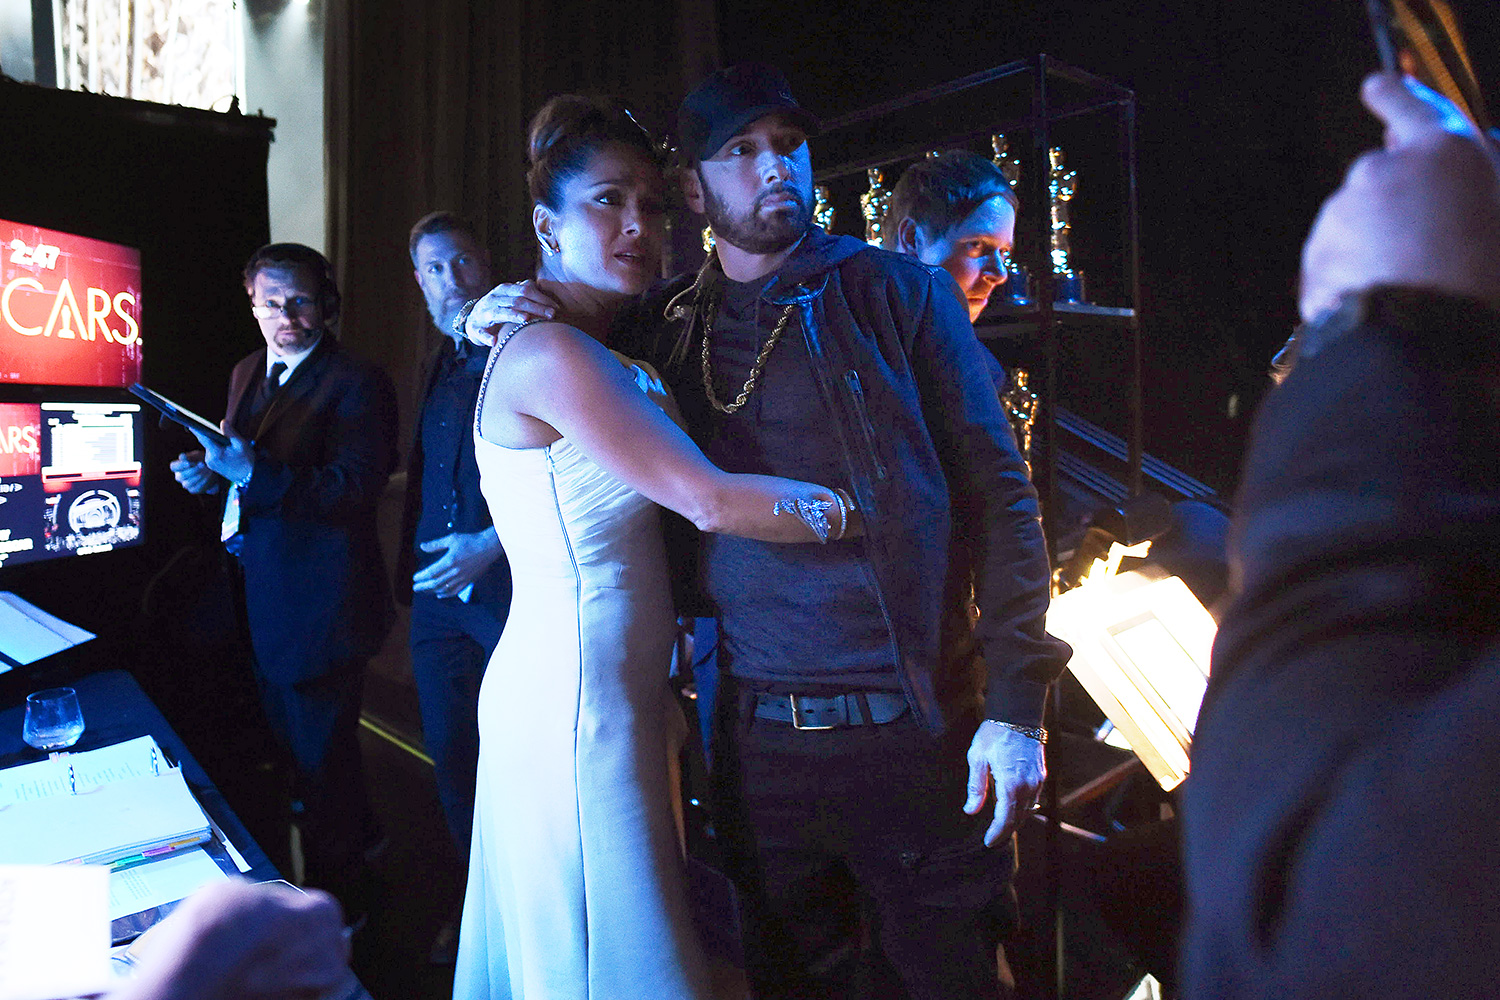 Salma Hayek Pinault and Eminem pose backstage during the 92nd Annual Academy Awards at the Dolby Theatre on February 09, 2020 in Hollywood, California